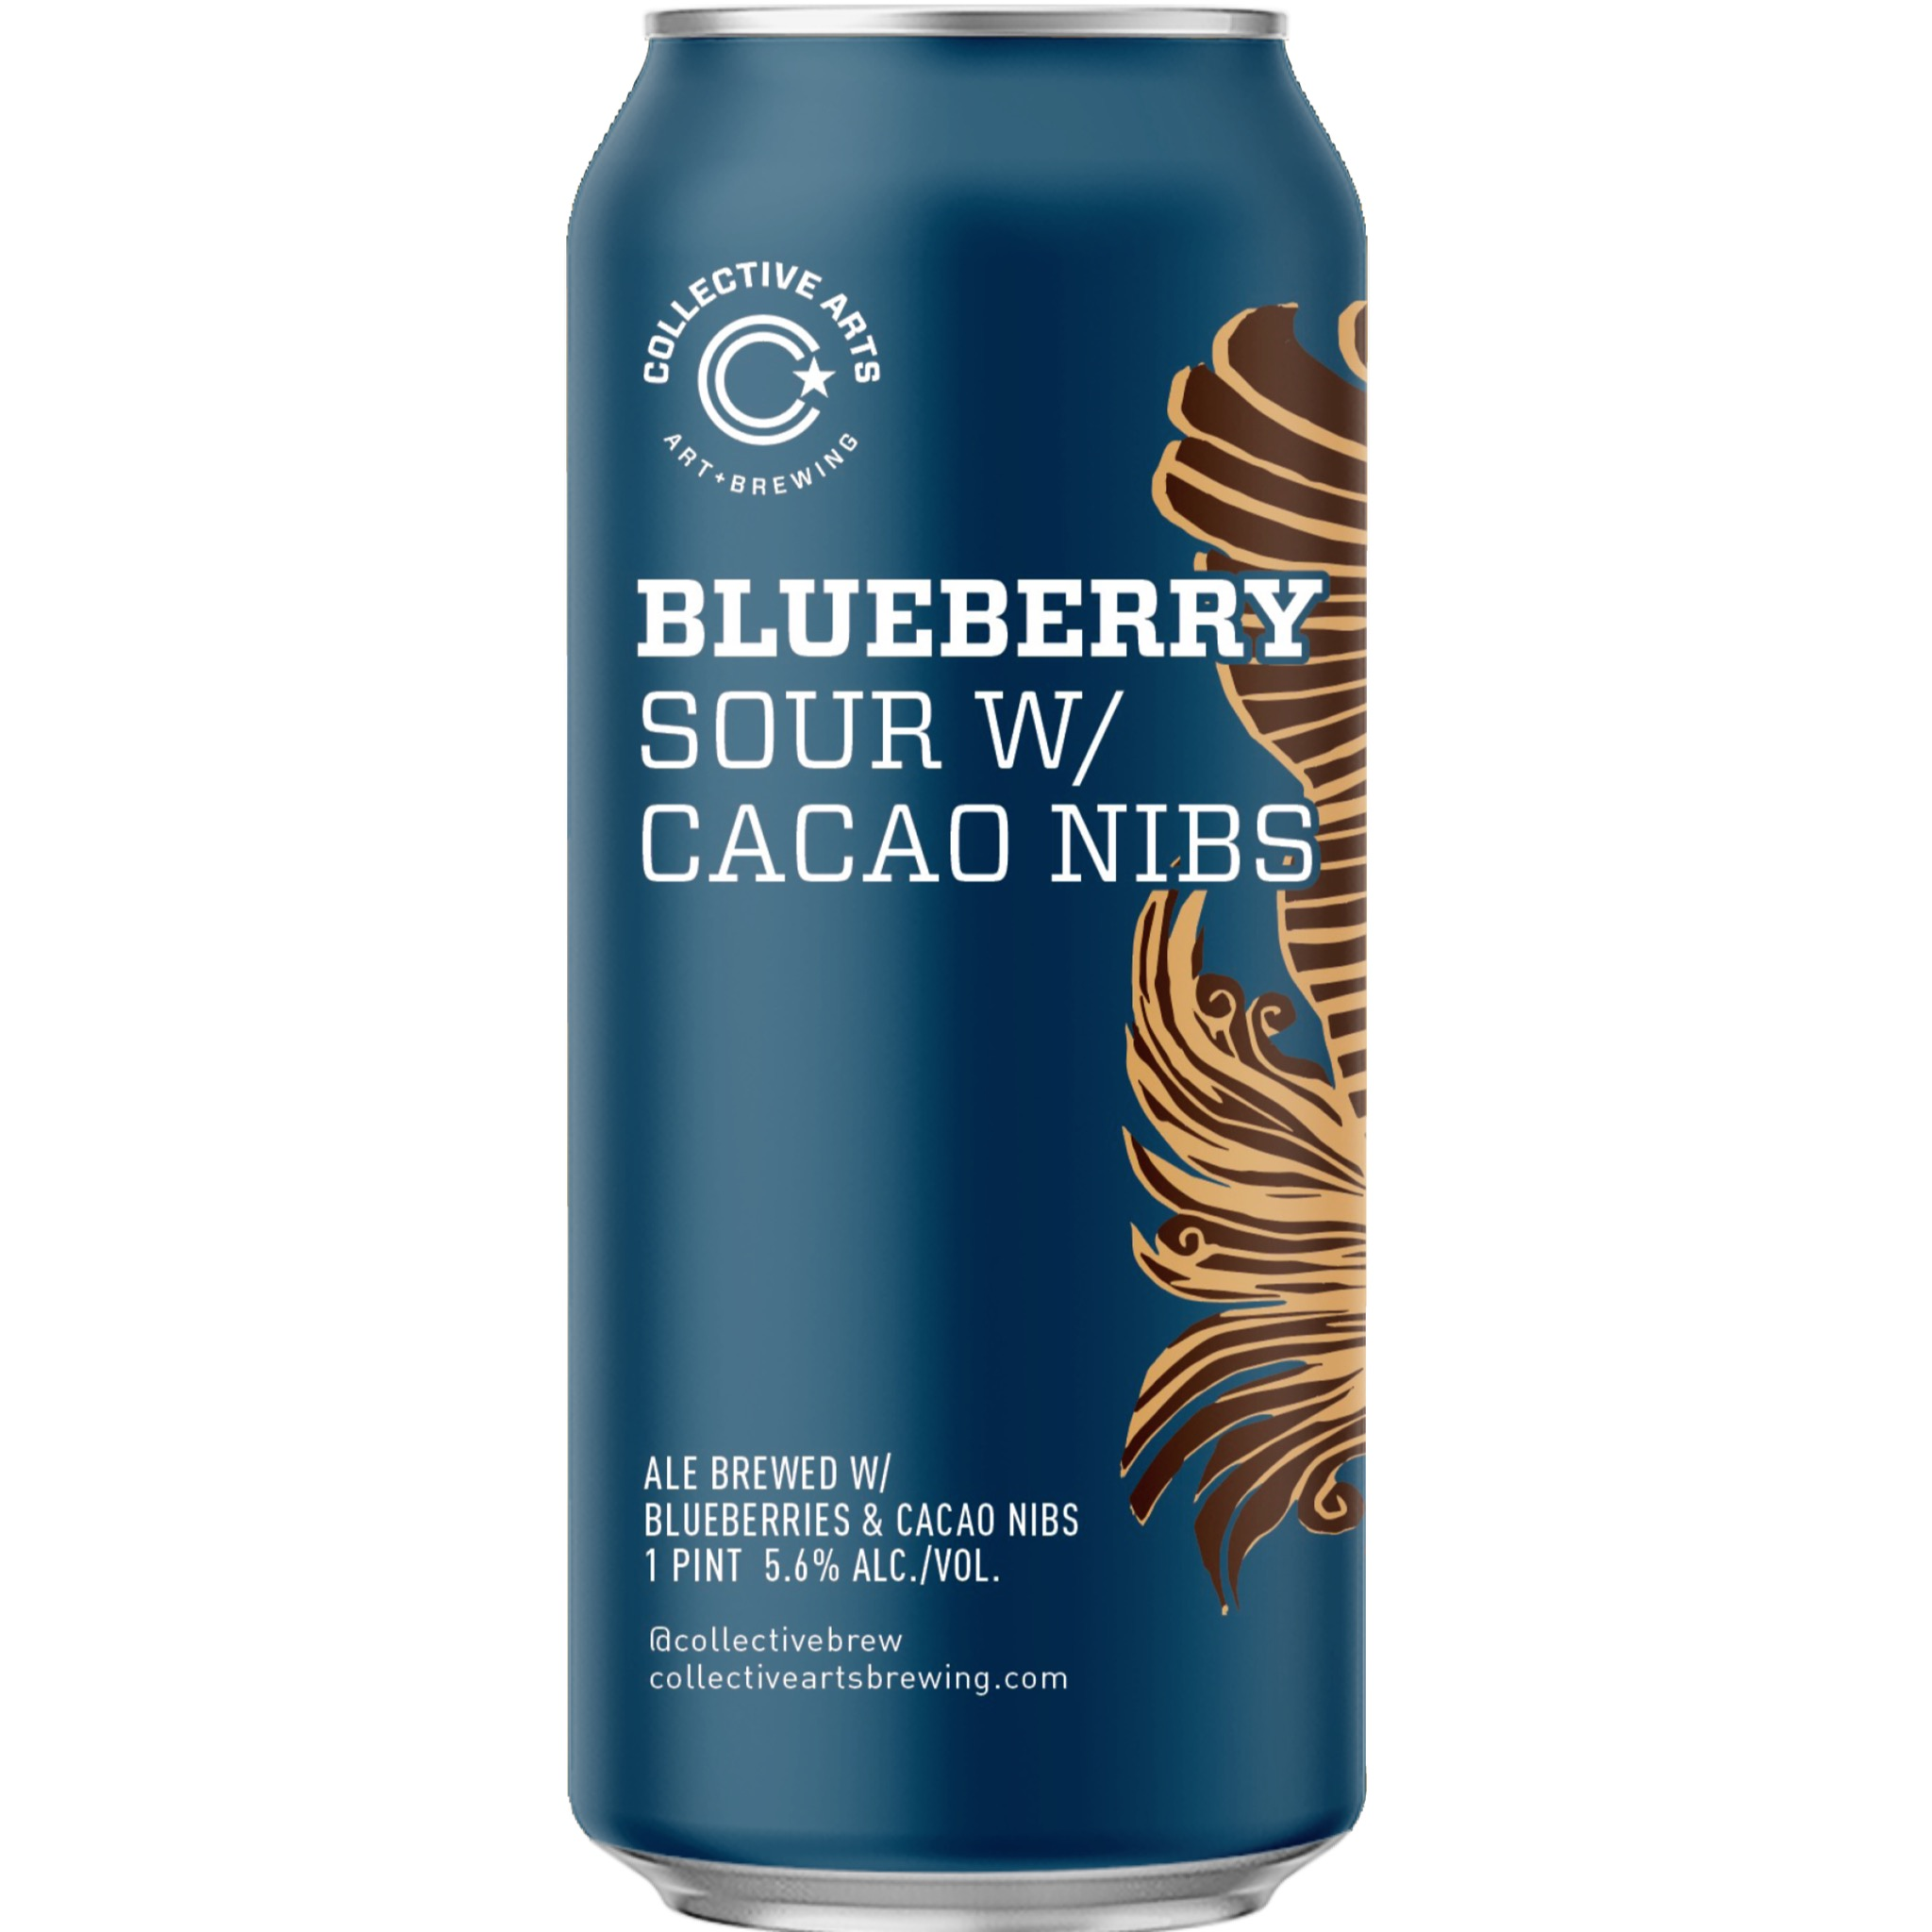 BLUEBERRY SOUR W/ CACAO NIBS 5.6% 473ml Collective Arts Brewing